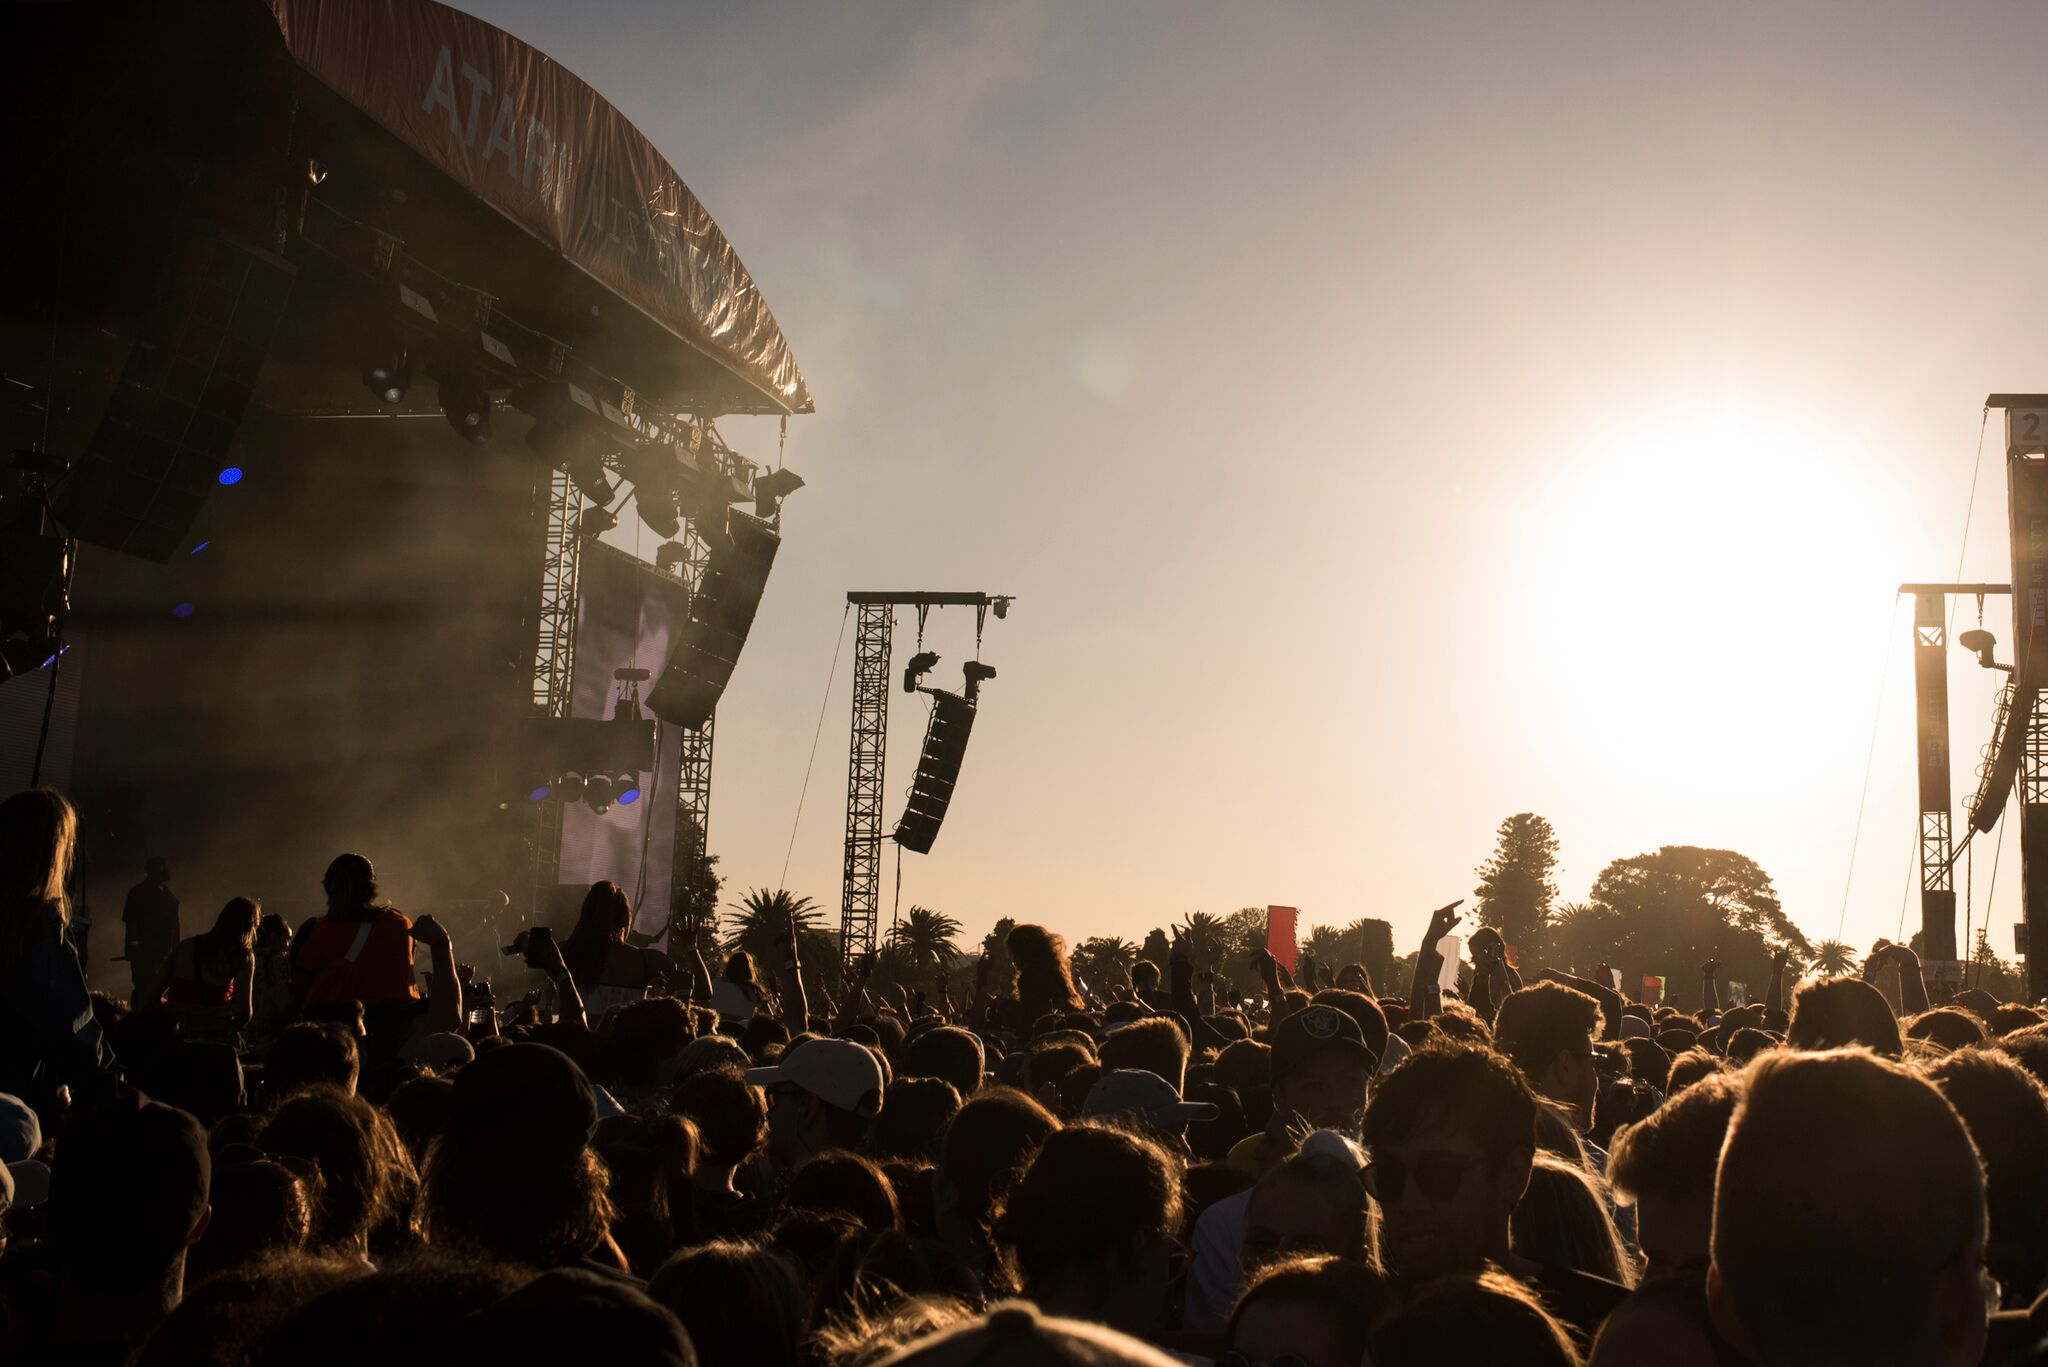 Listen Out 2020 Festival Cancelled: 'We Had A Killer Line-up Ready To Go'